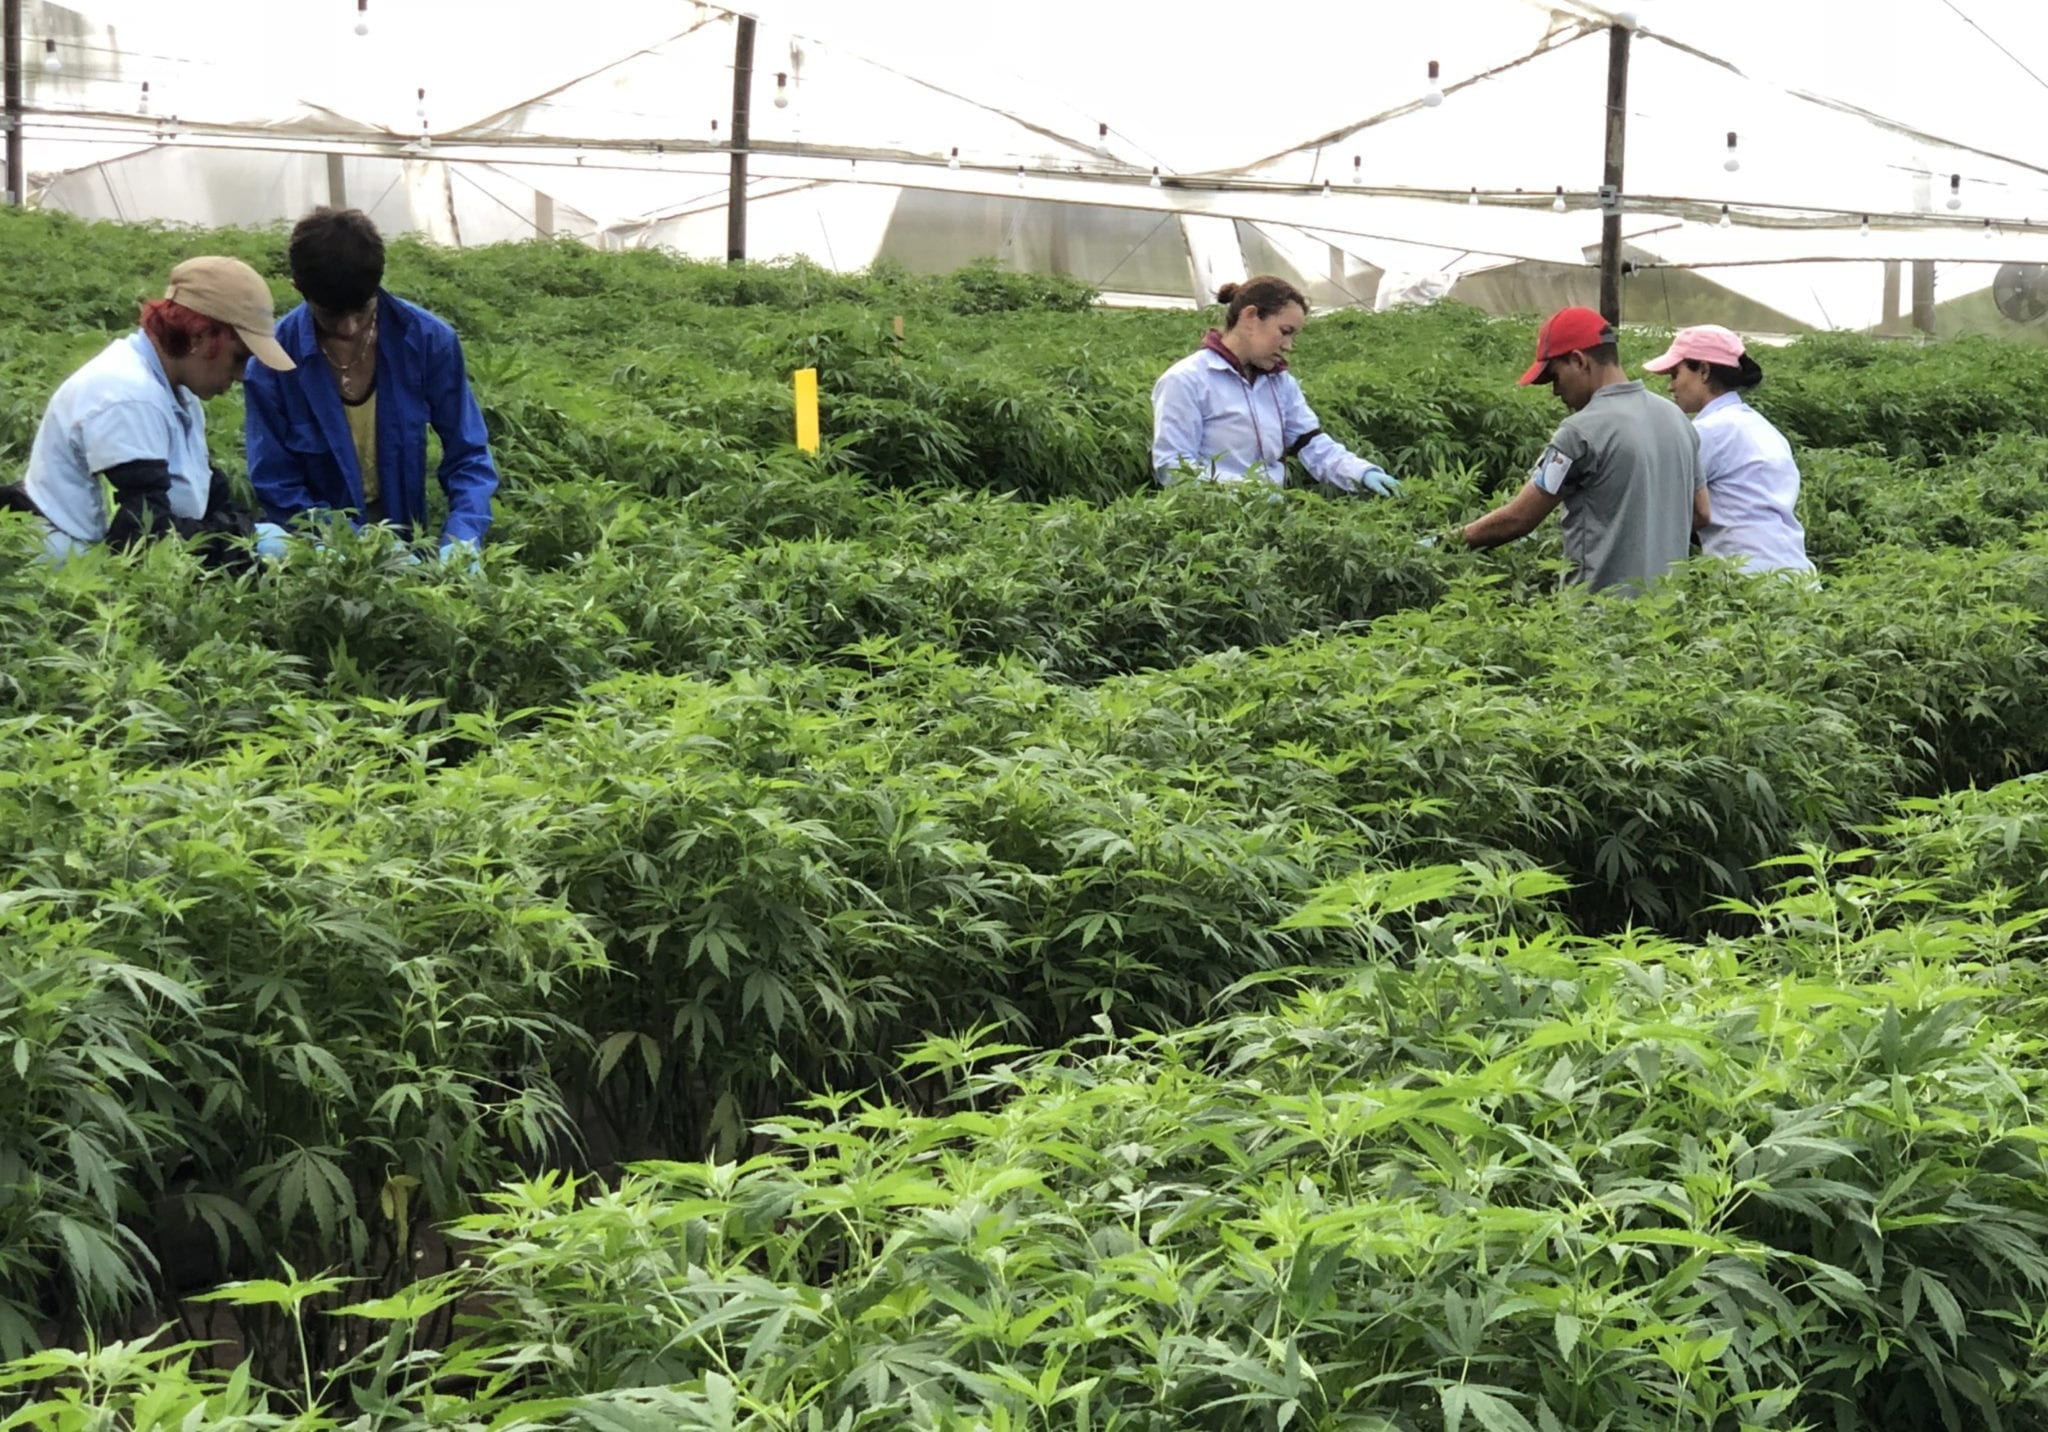 Will Mexico's medical cannabis laws help or hurt public safety - PharmaCielo